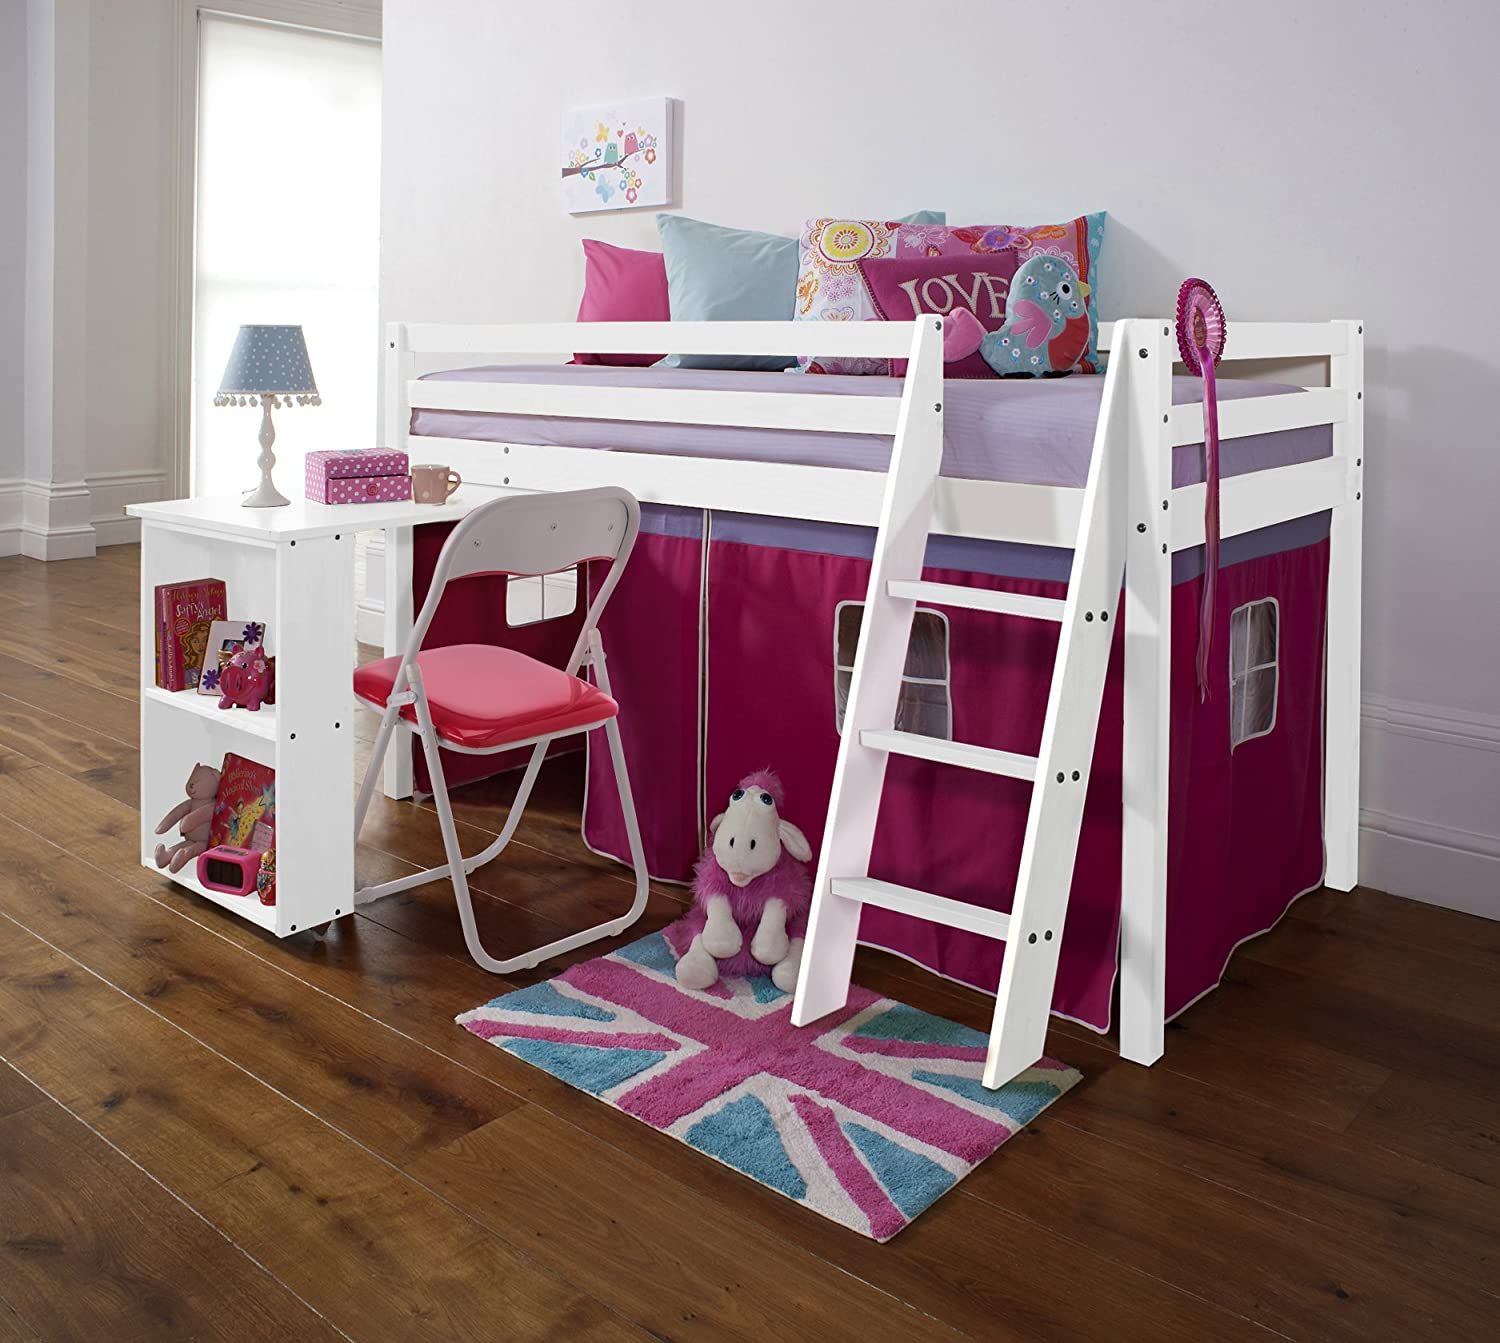 Noa and Nani Cabin Bed with Desk in PINK, WHITE, Mid SLeeper DESK-WG